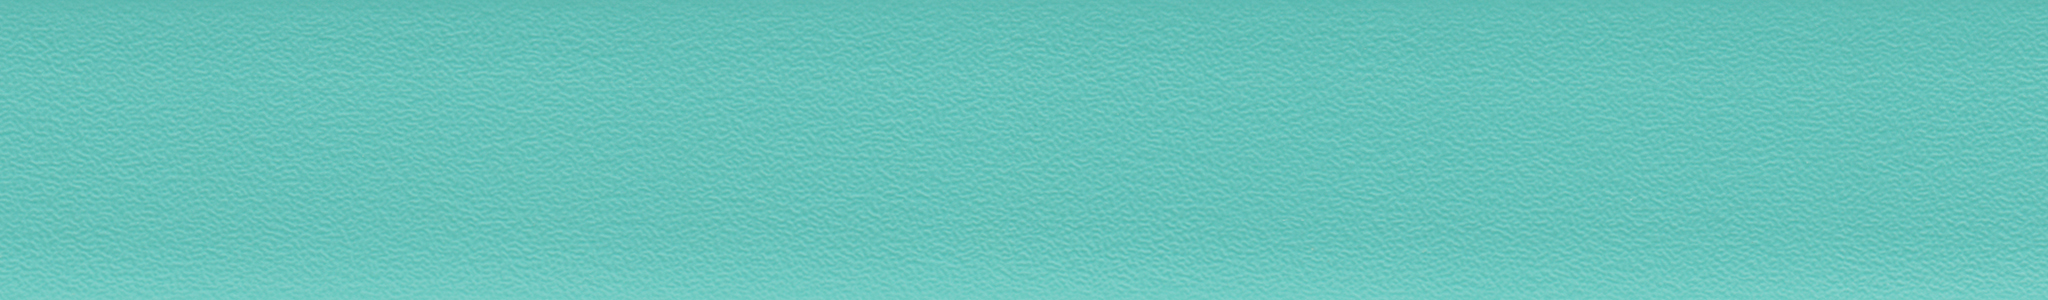 HU 16611 Chant ABS Turquoise Perle 101